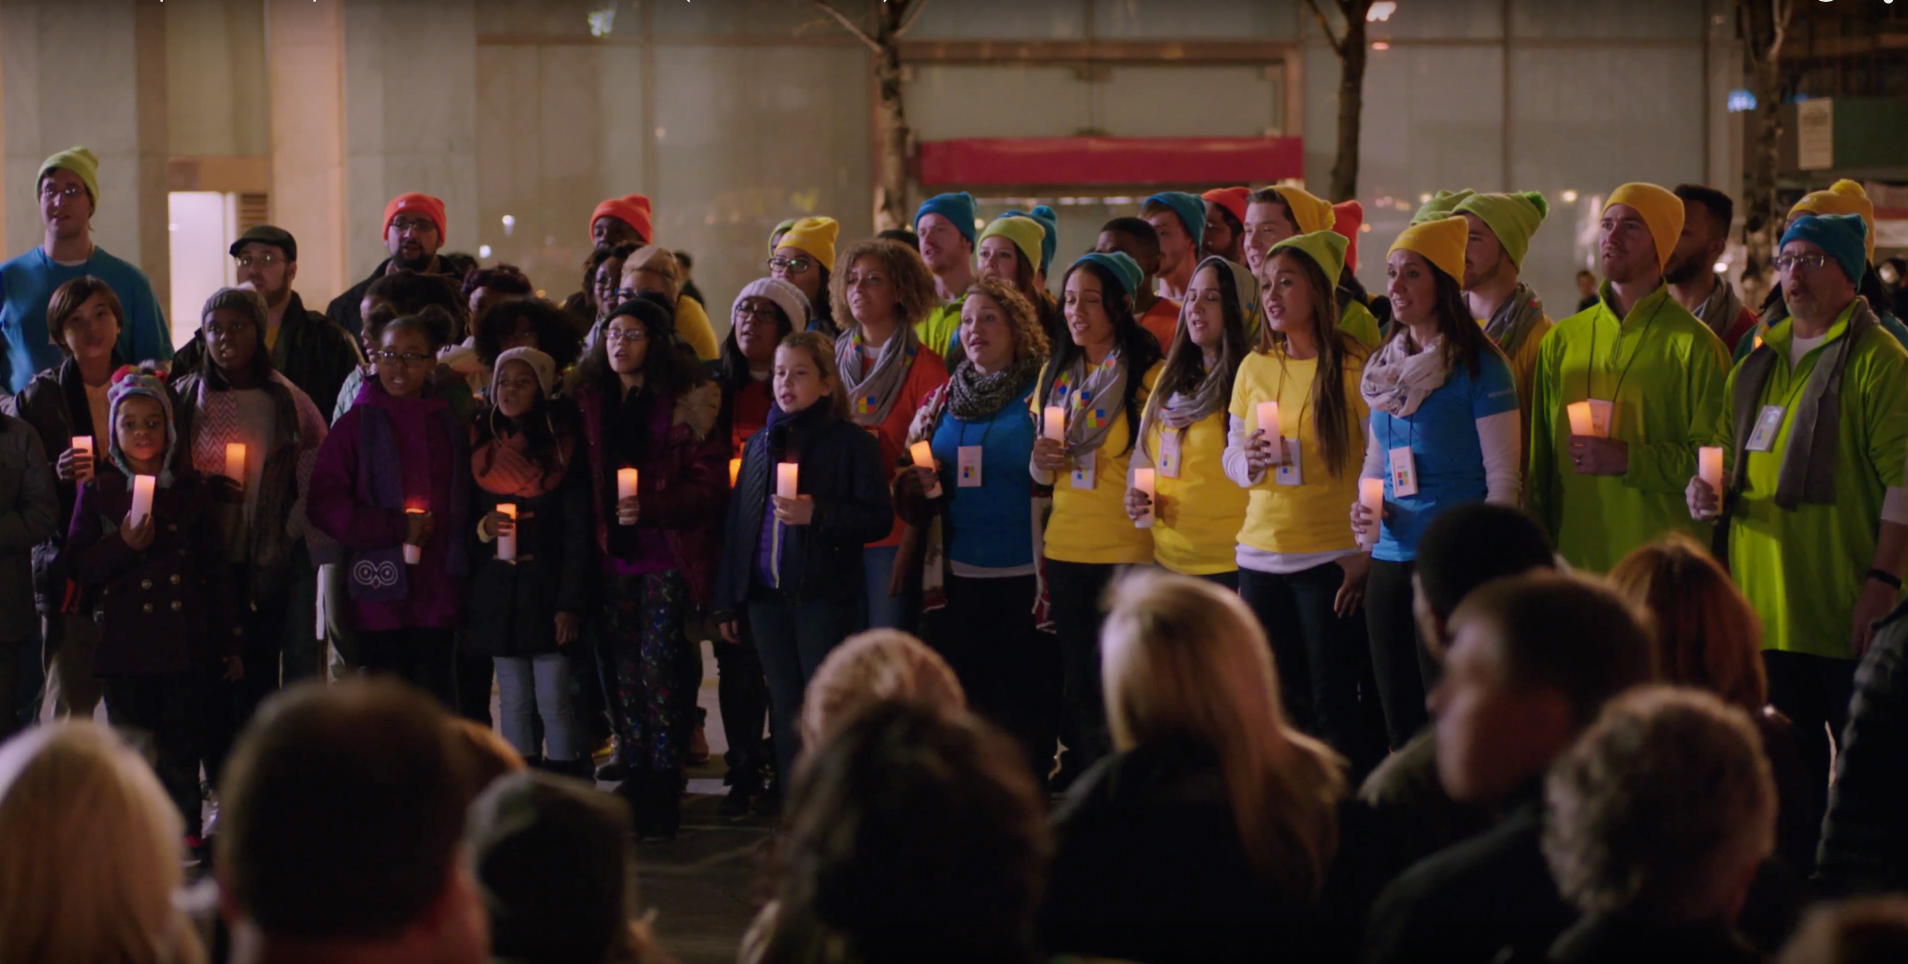 Microsoft employees spread some Christmas cheer by caroling - outside an Apple Store